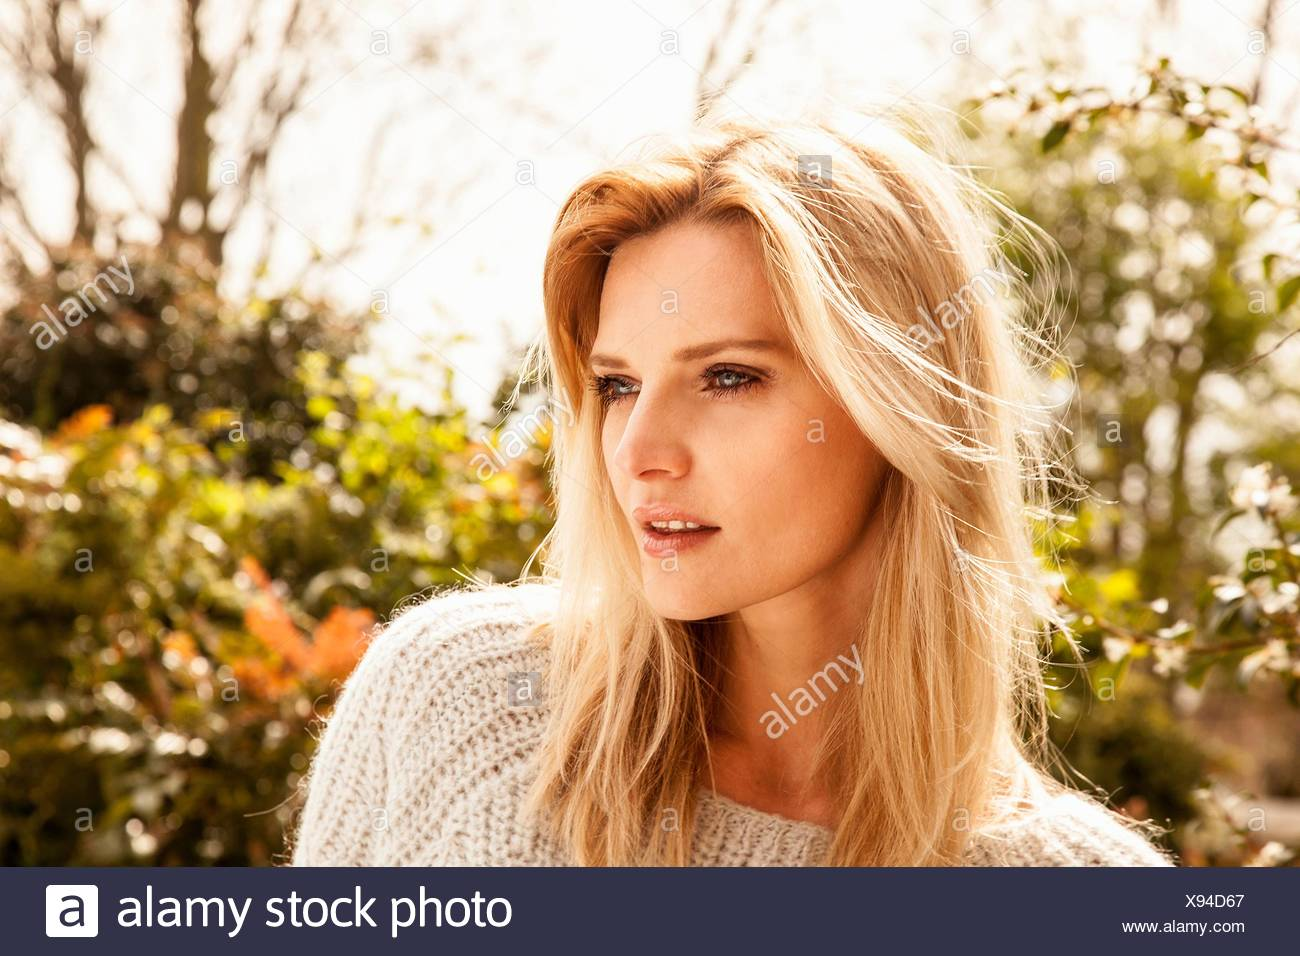 Belle Mid adult woman avec de longs cheveux blonds dans jardin Photo Stock